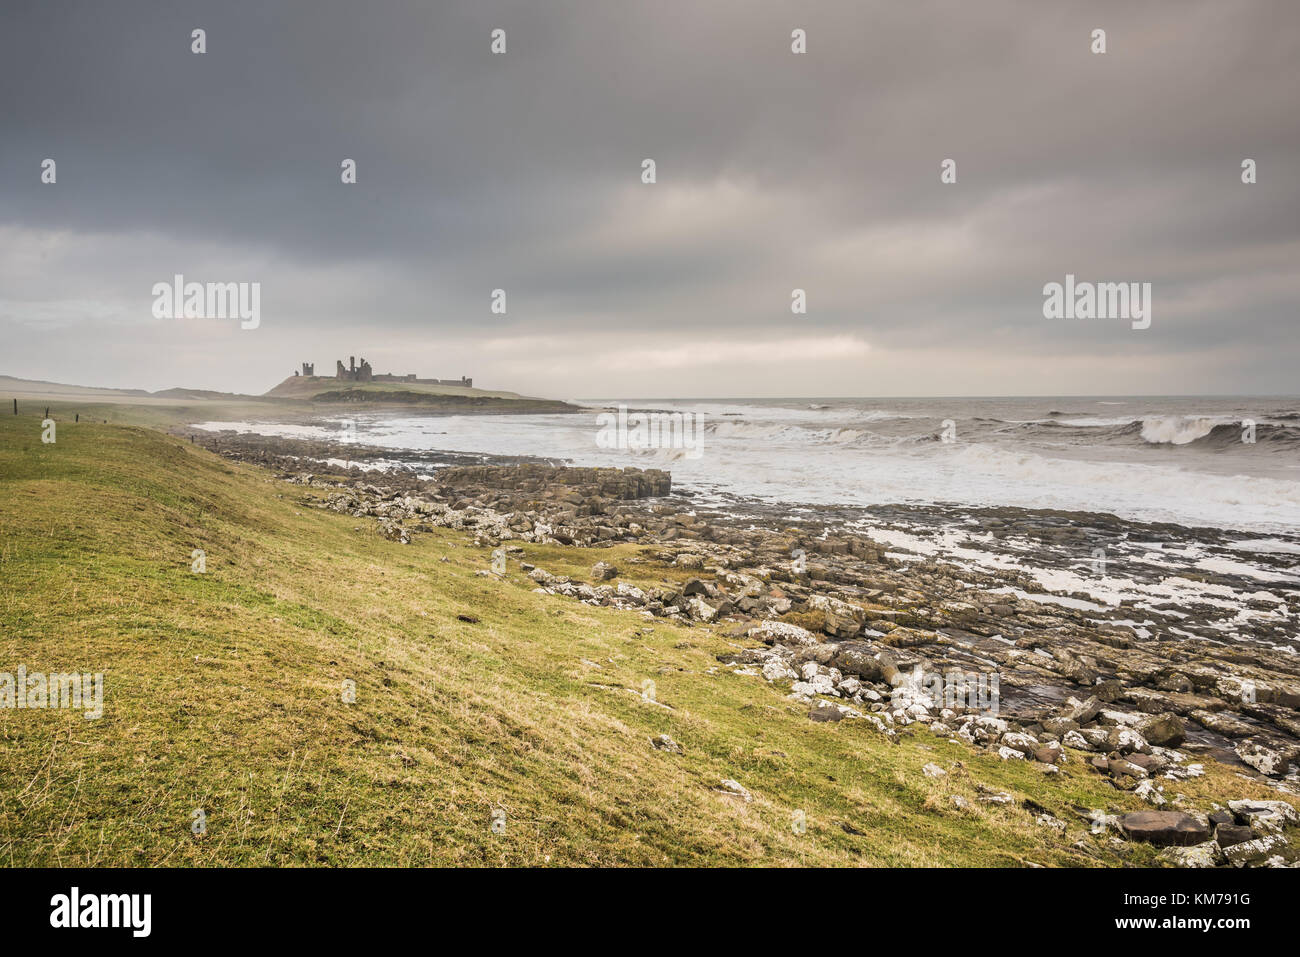 Castle on Shore - Stock Image